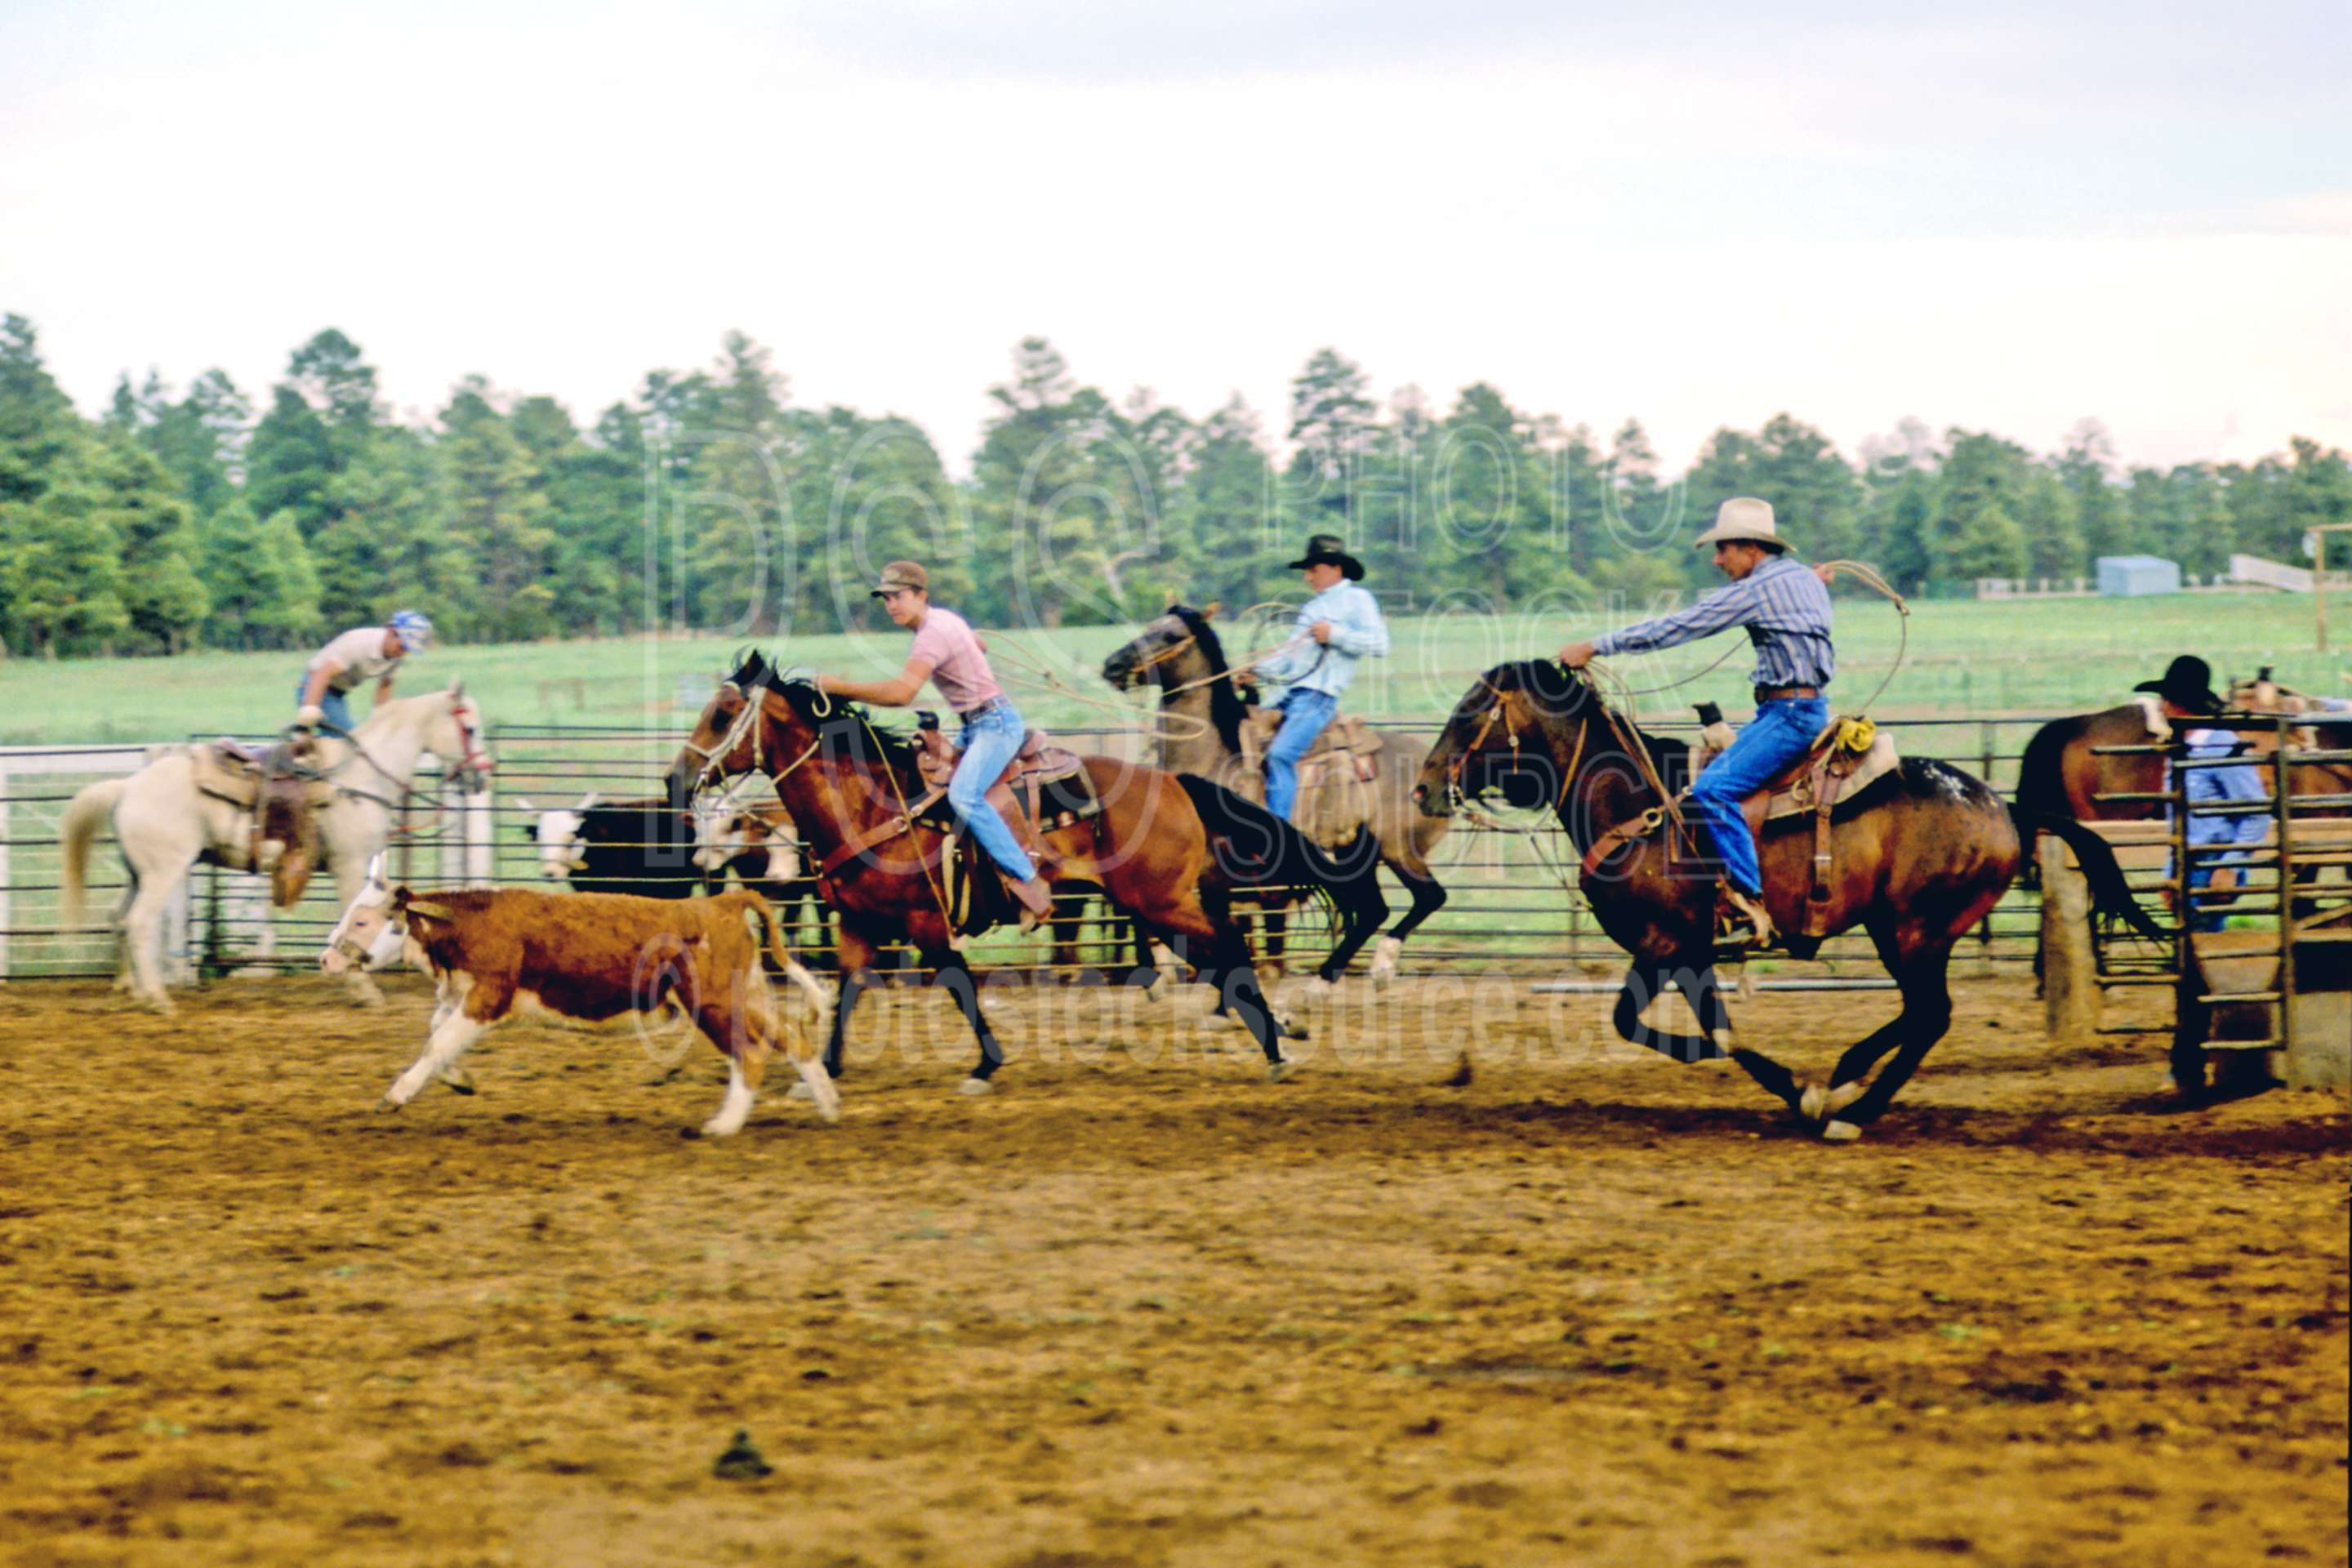 Team Roping,cattle,cows,cowboy,horse,ranch,roping,usas